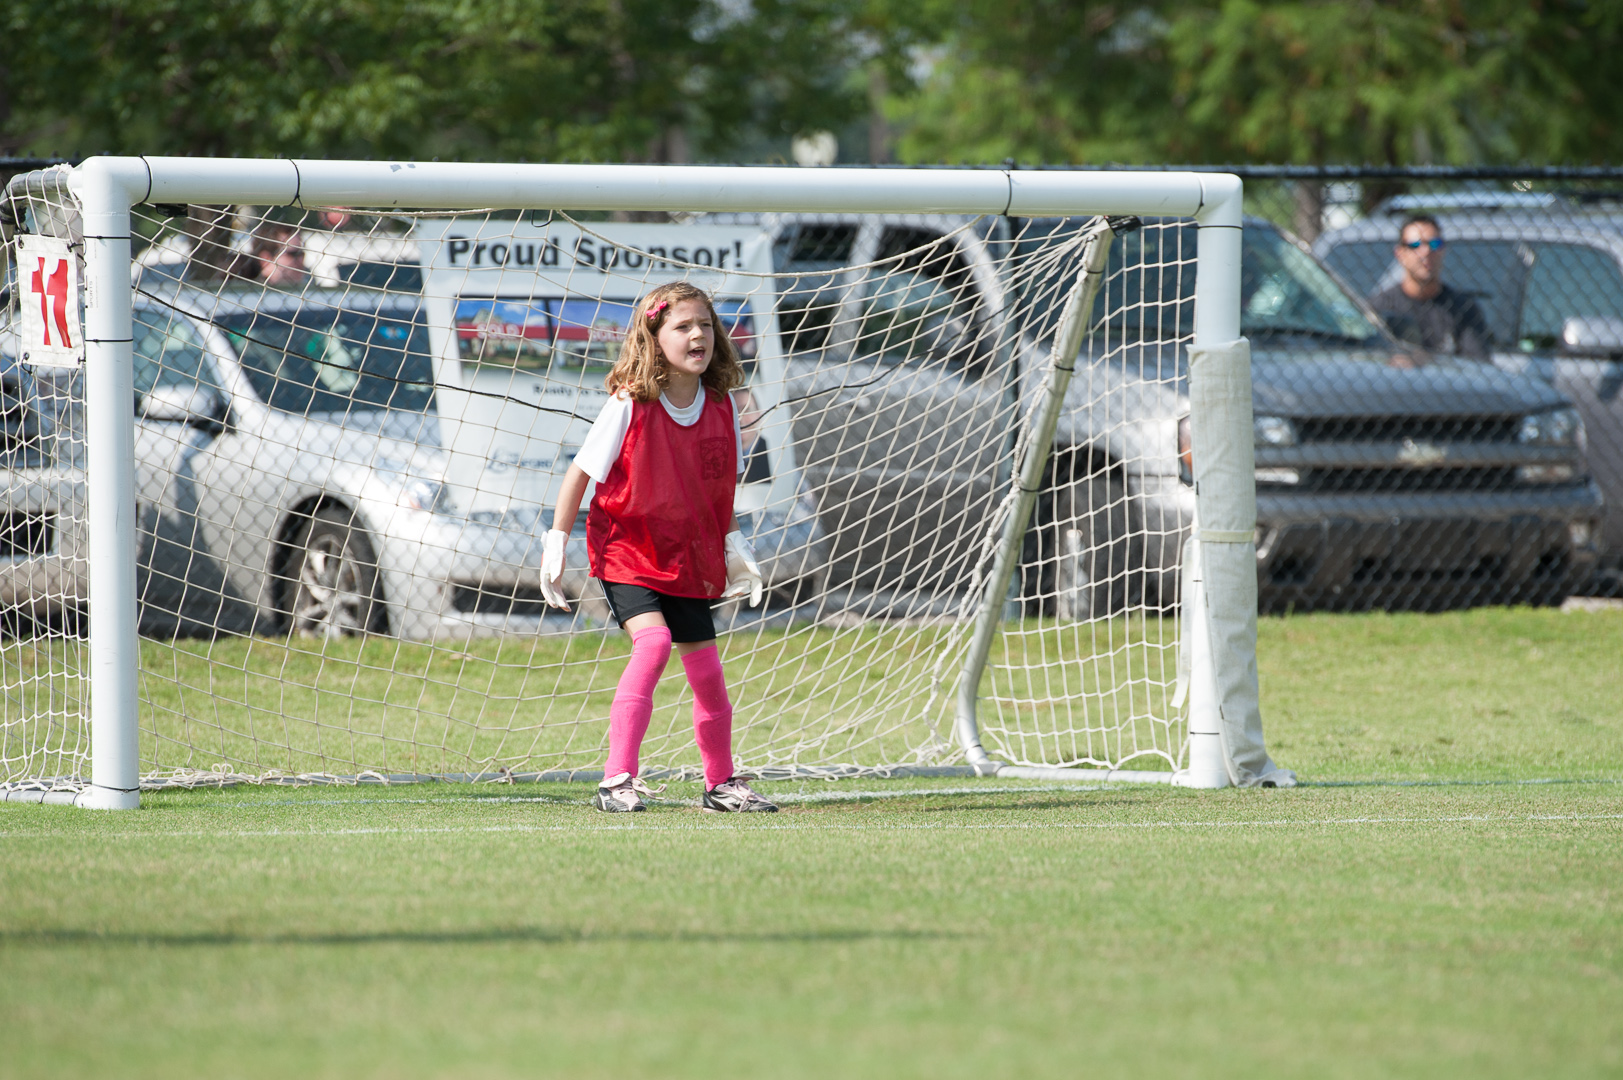 Ella cheers on her team non-stop from her spot playing goalie.